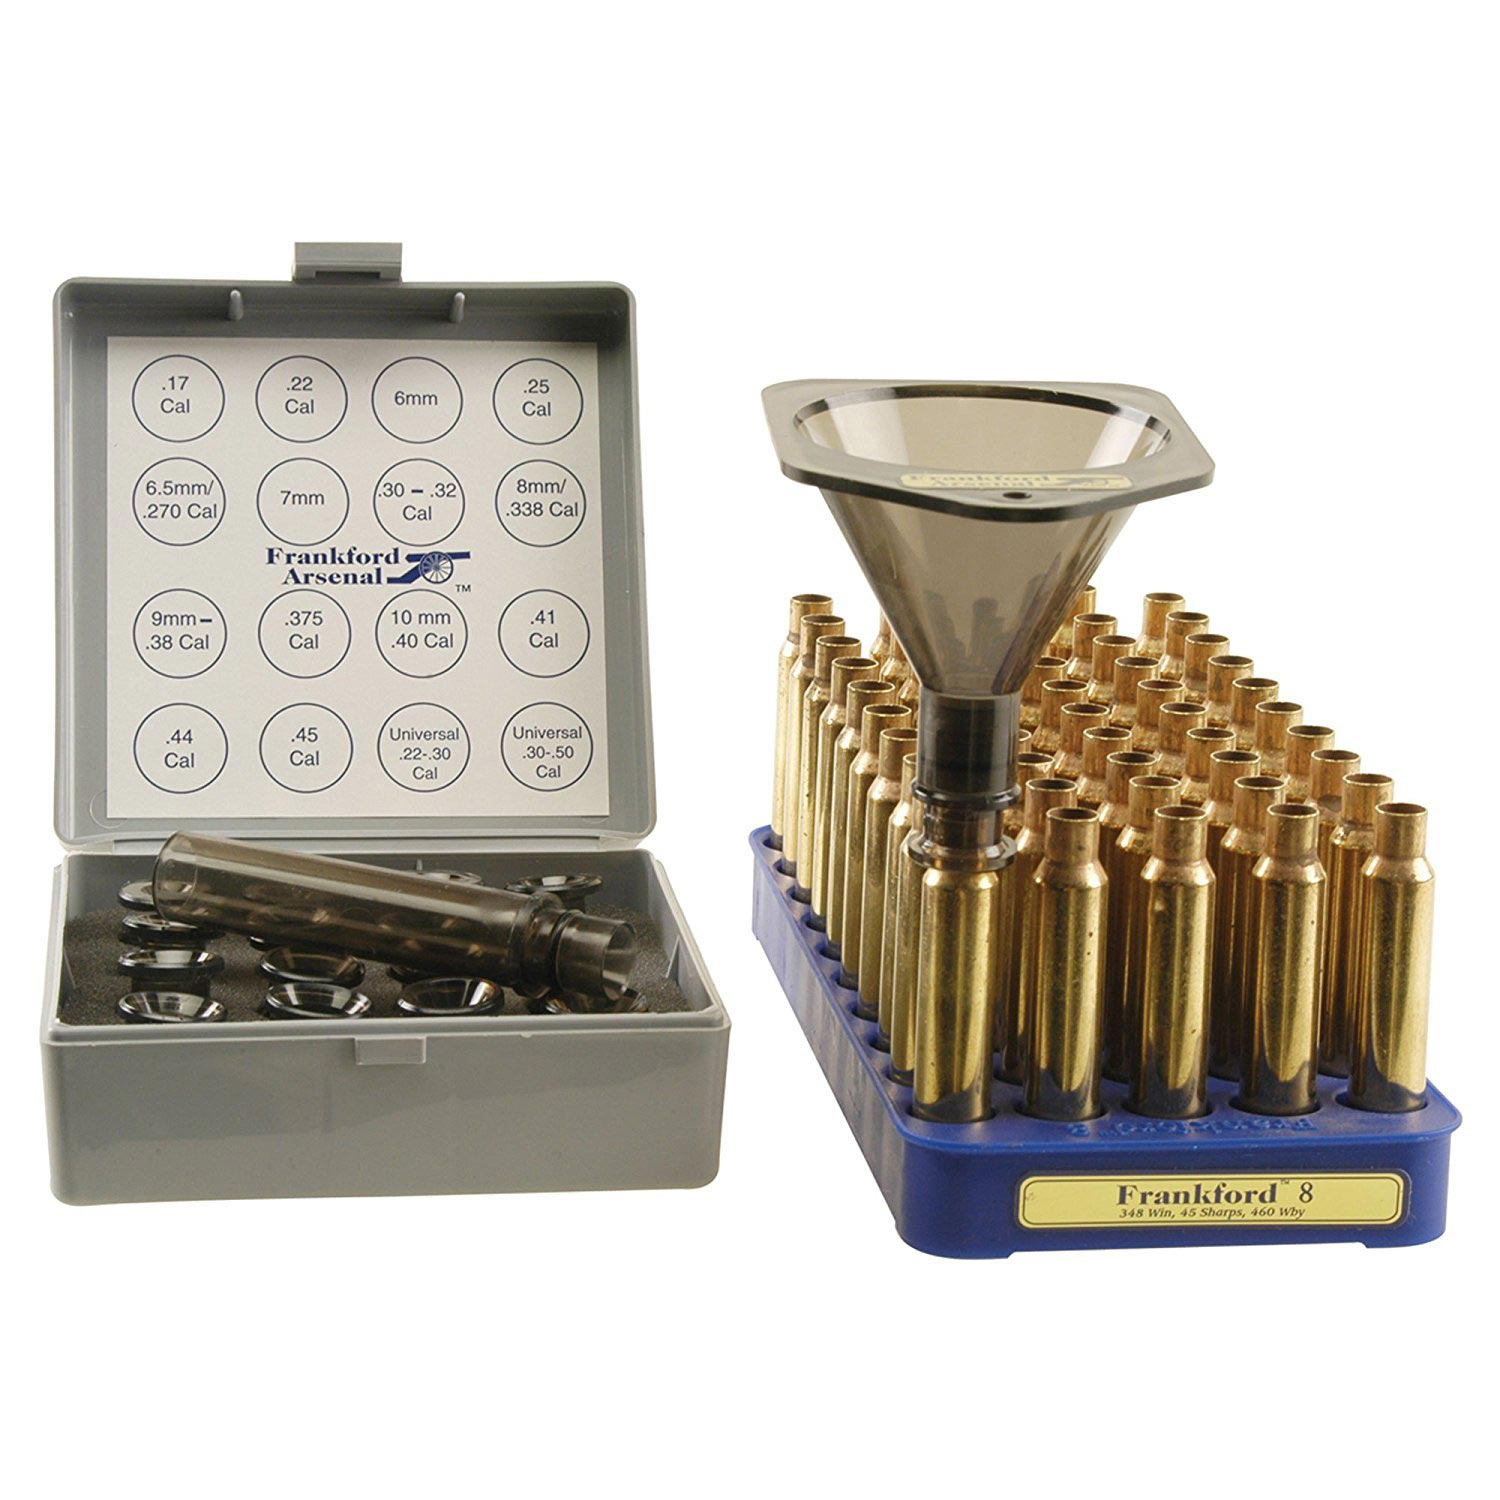 Smith & Wesson 832516 Frankford Powder Funnel With 16 Nozzles And 4 Inch Drop Tube Extension by Smith & Wesson